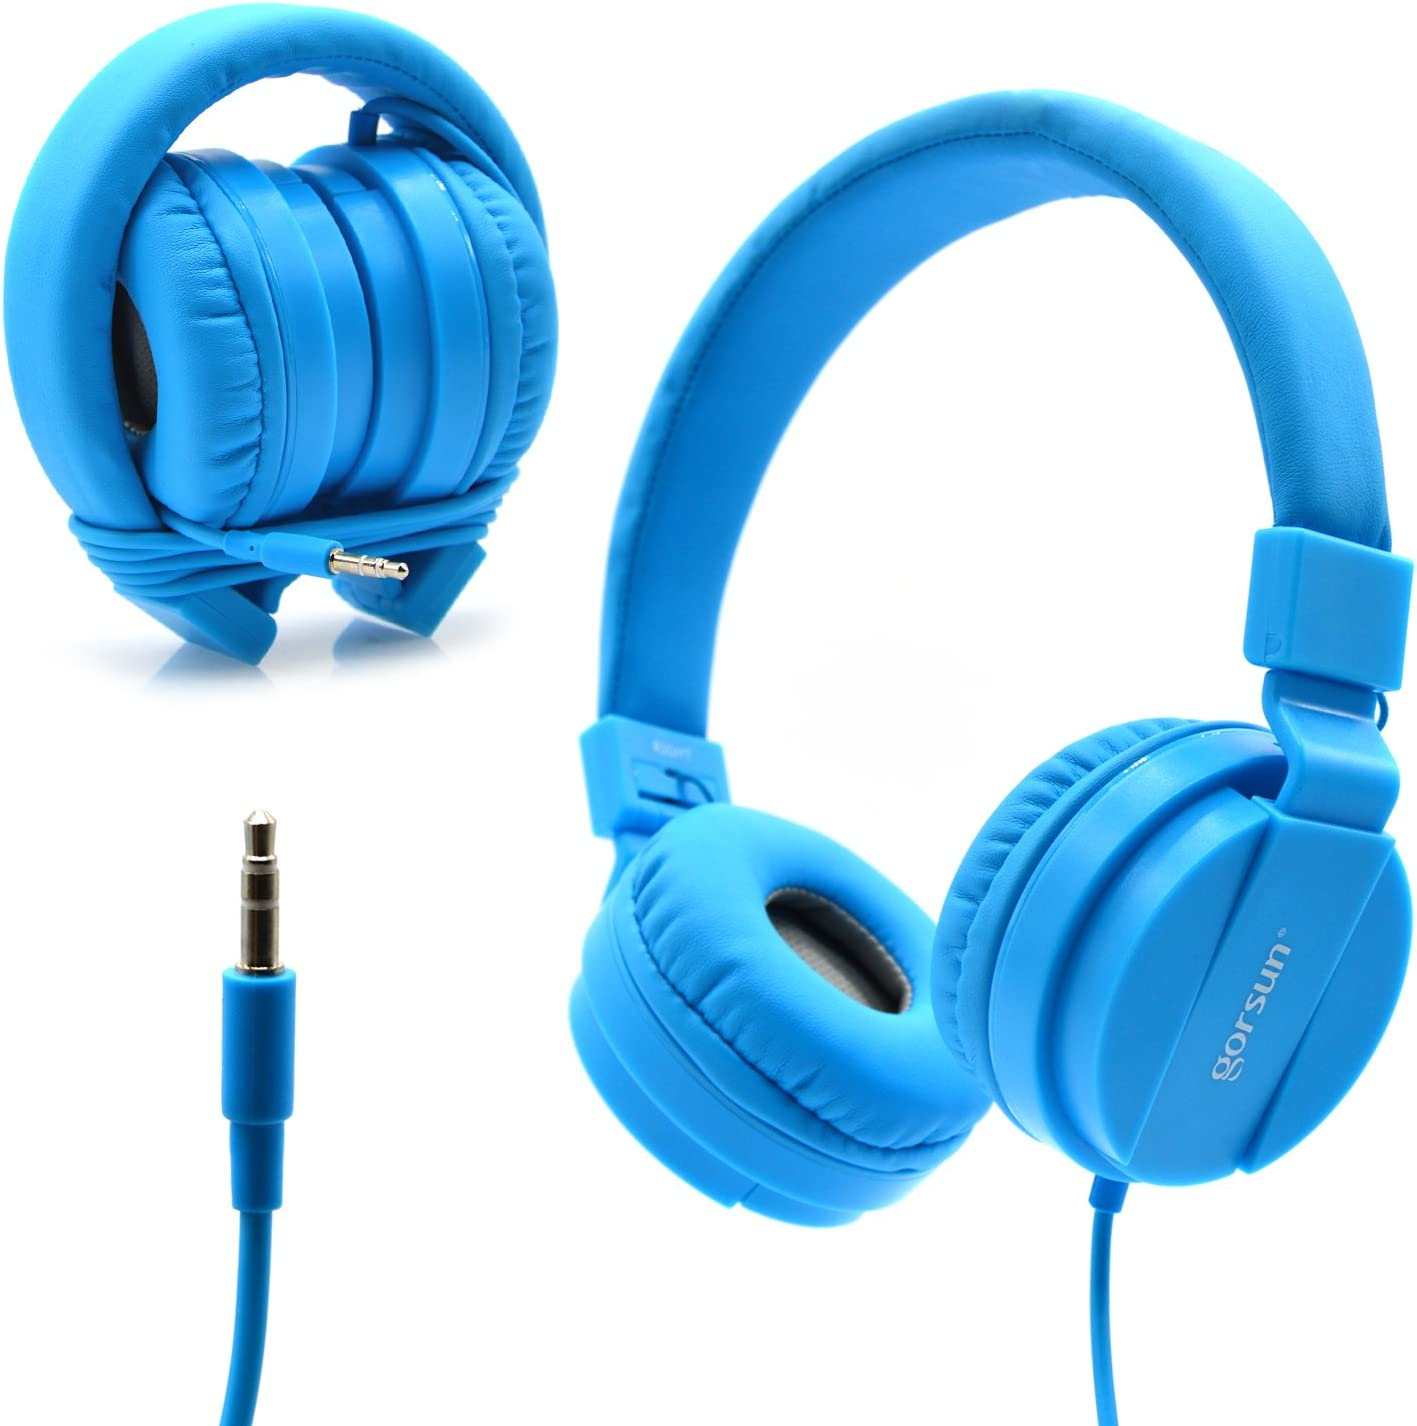 Bluelark Foldable Over Ear Headphones for the traverl on plane and air plane its also used for the computer gaming and andriod